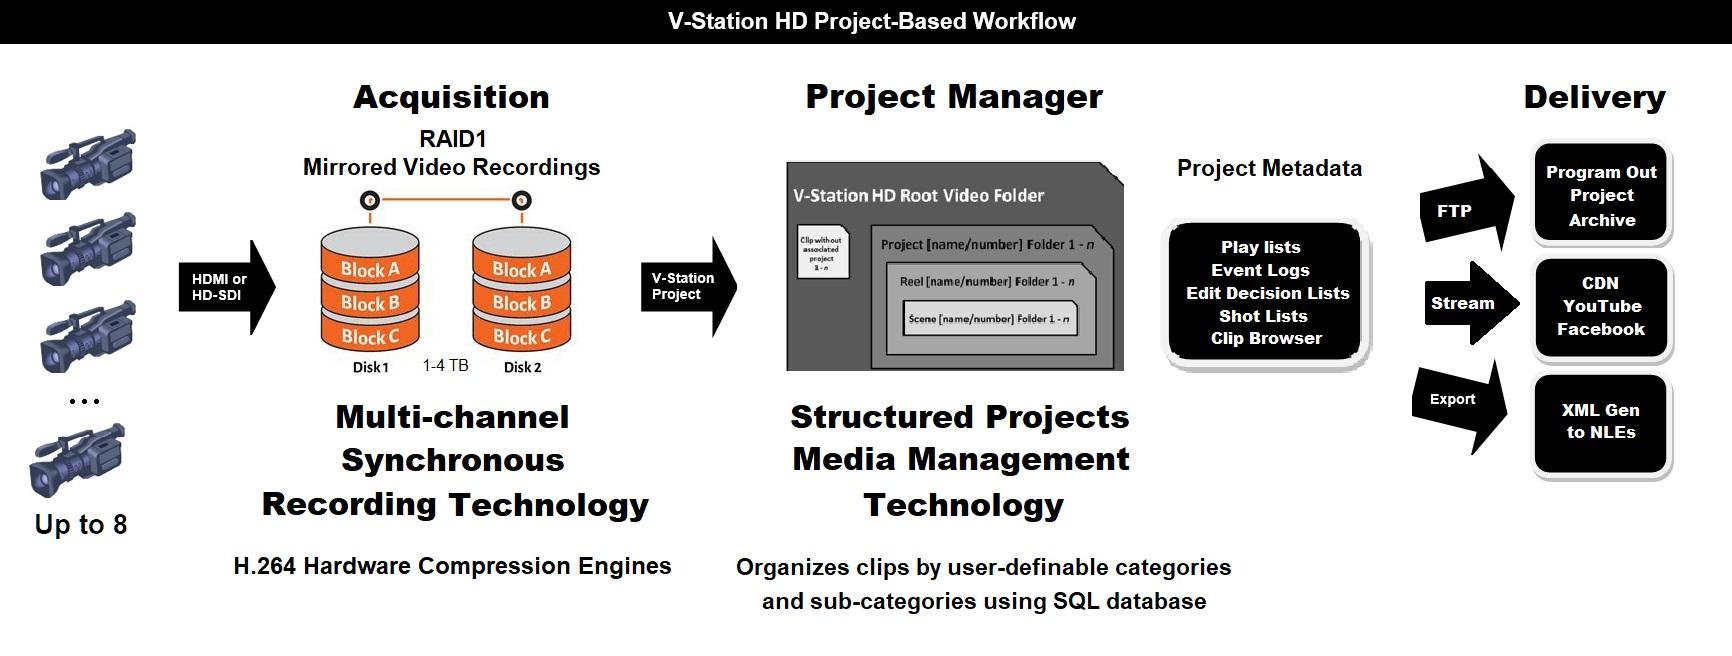 V-Station Project-based Workflow